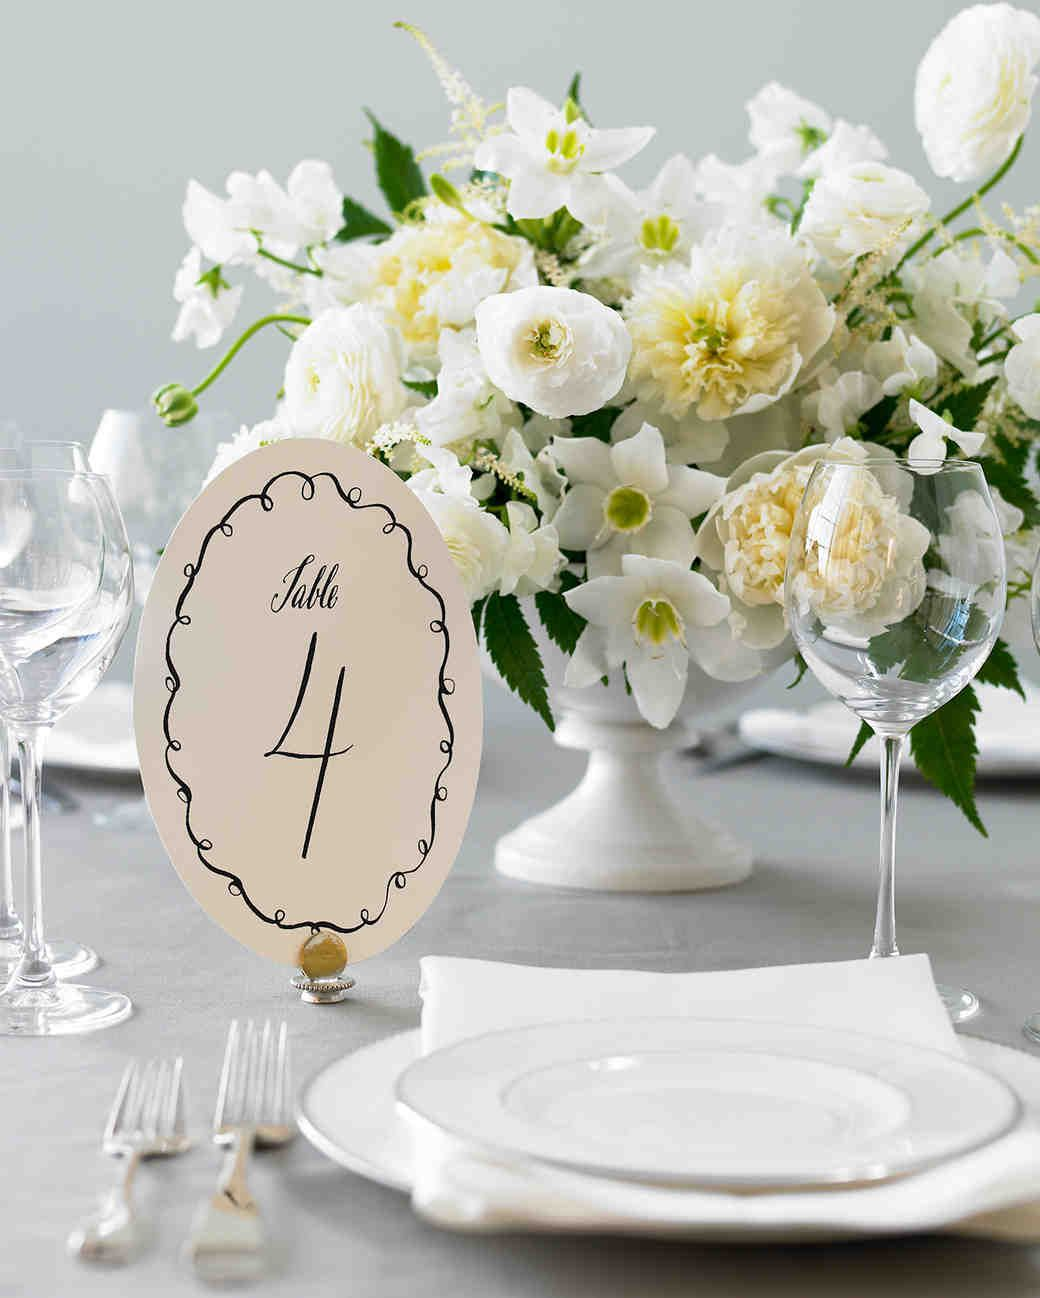 DIY Table Numbers to Count on for a Special Touch | Table numbers ...